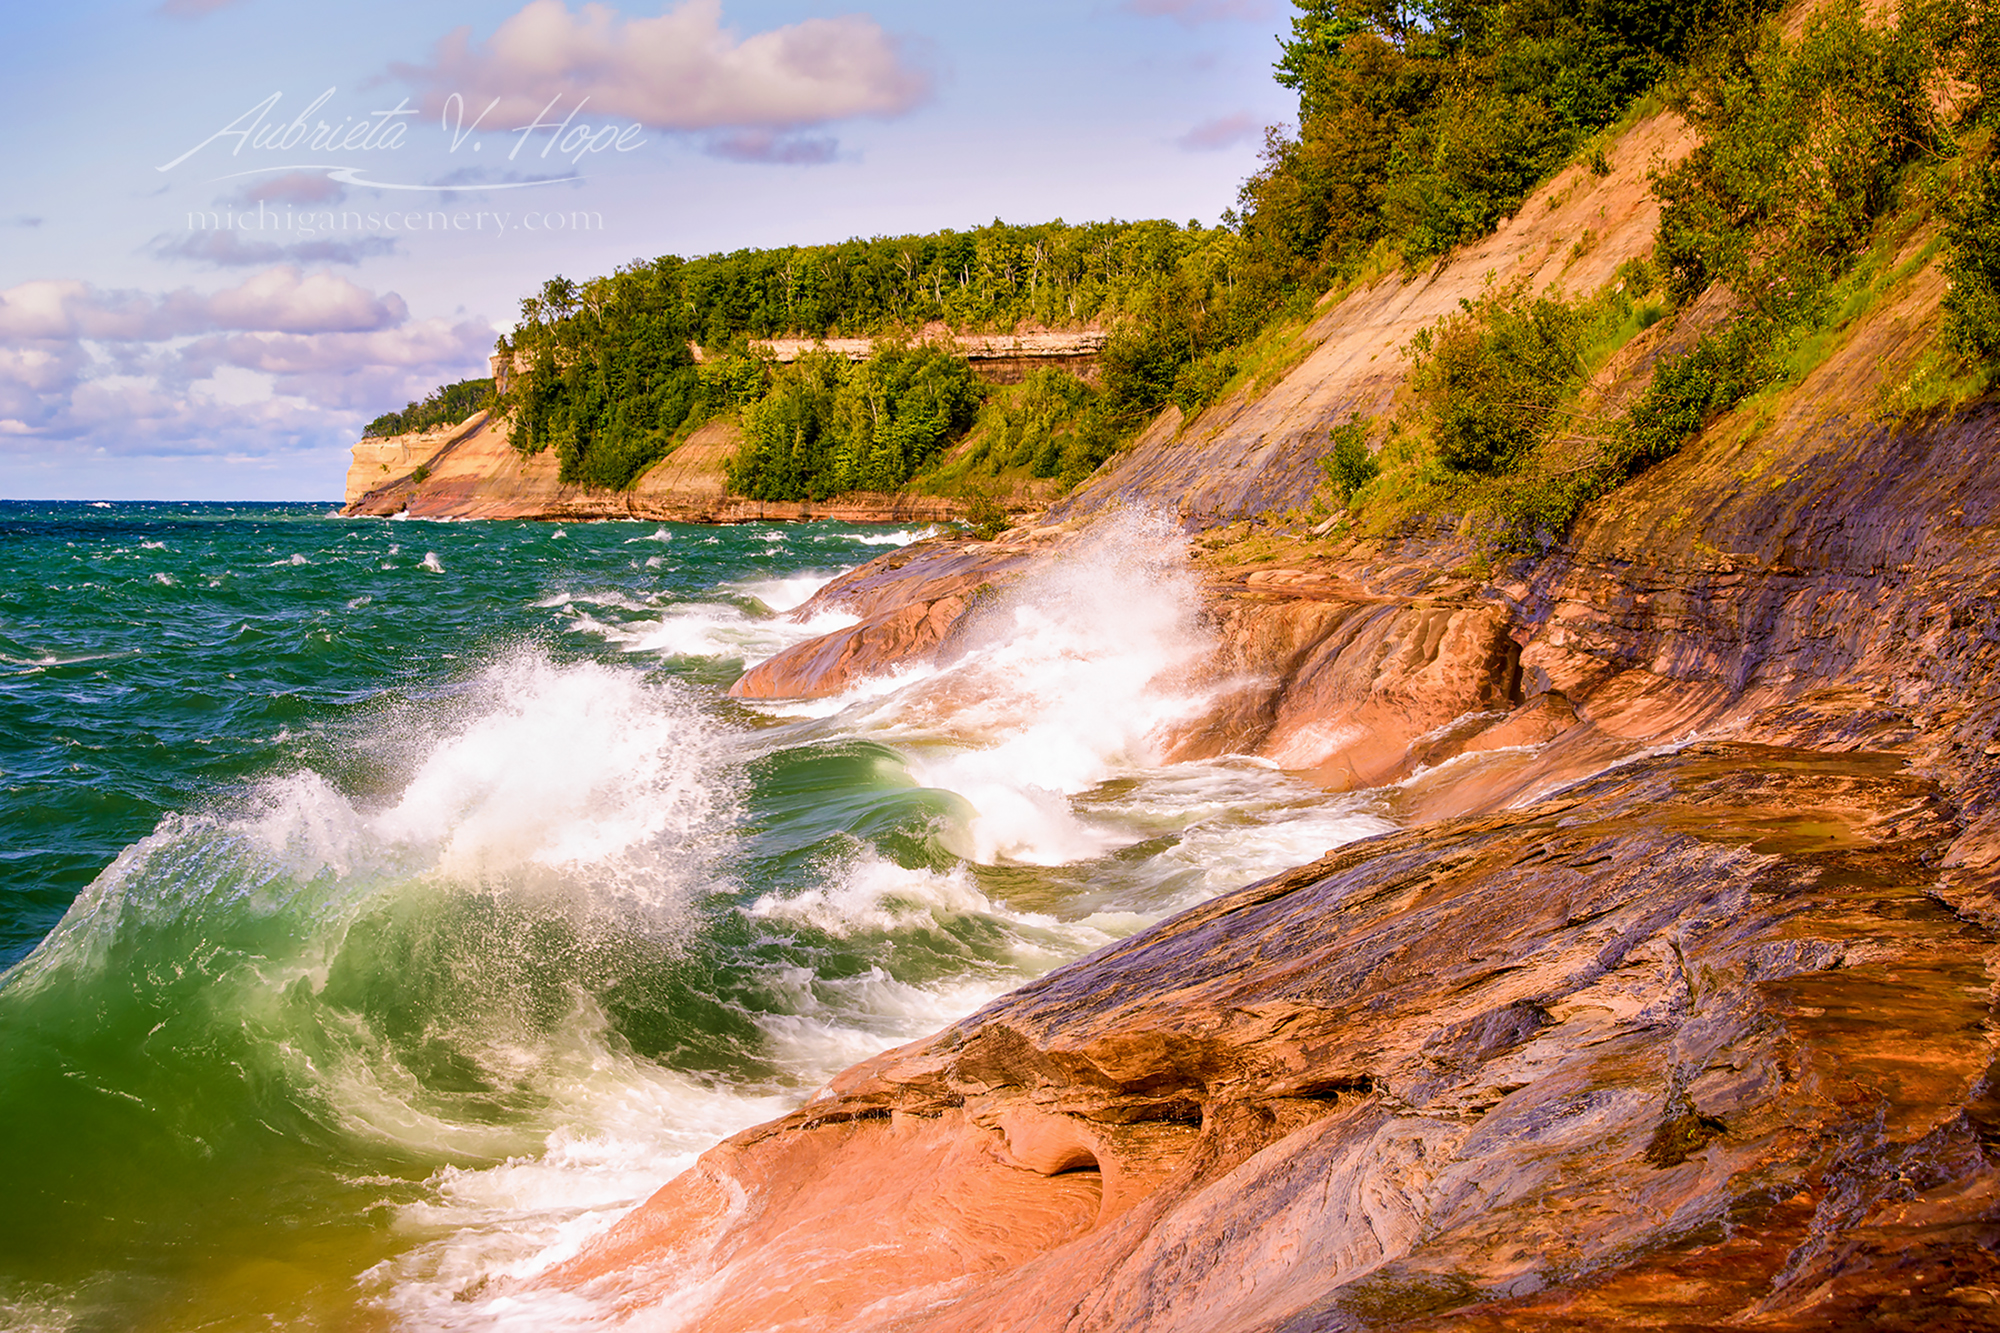 MI17-0974-5938 Crashing Waves at Pictured Rocks NL by Aubrieta V Hope Michigan Scenery.jpg